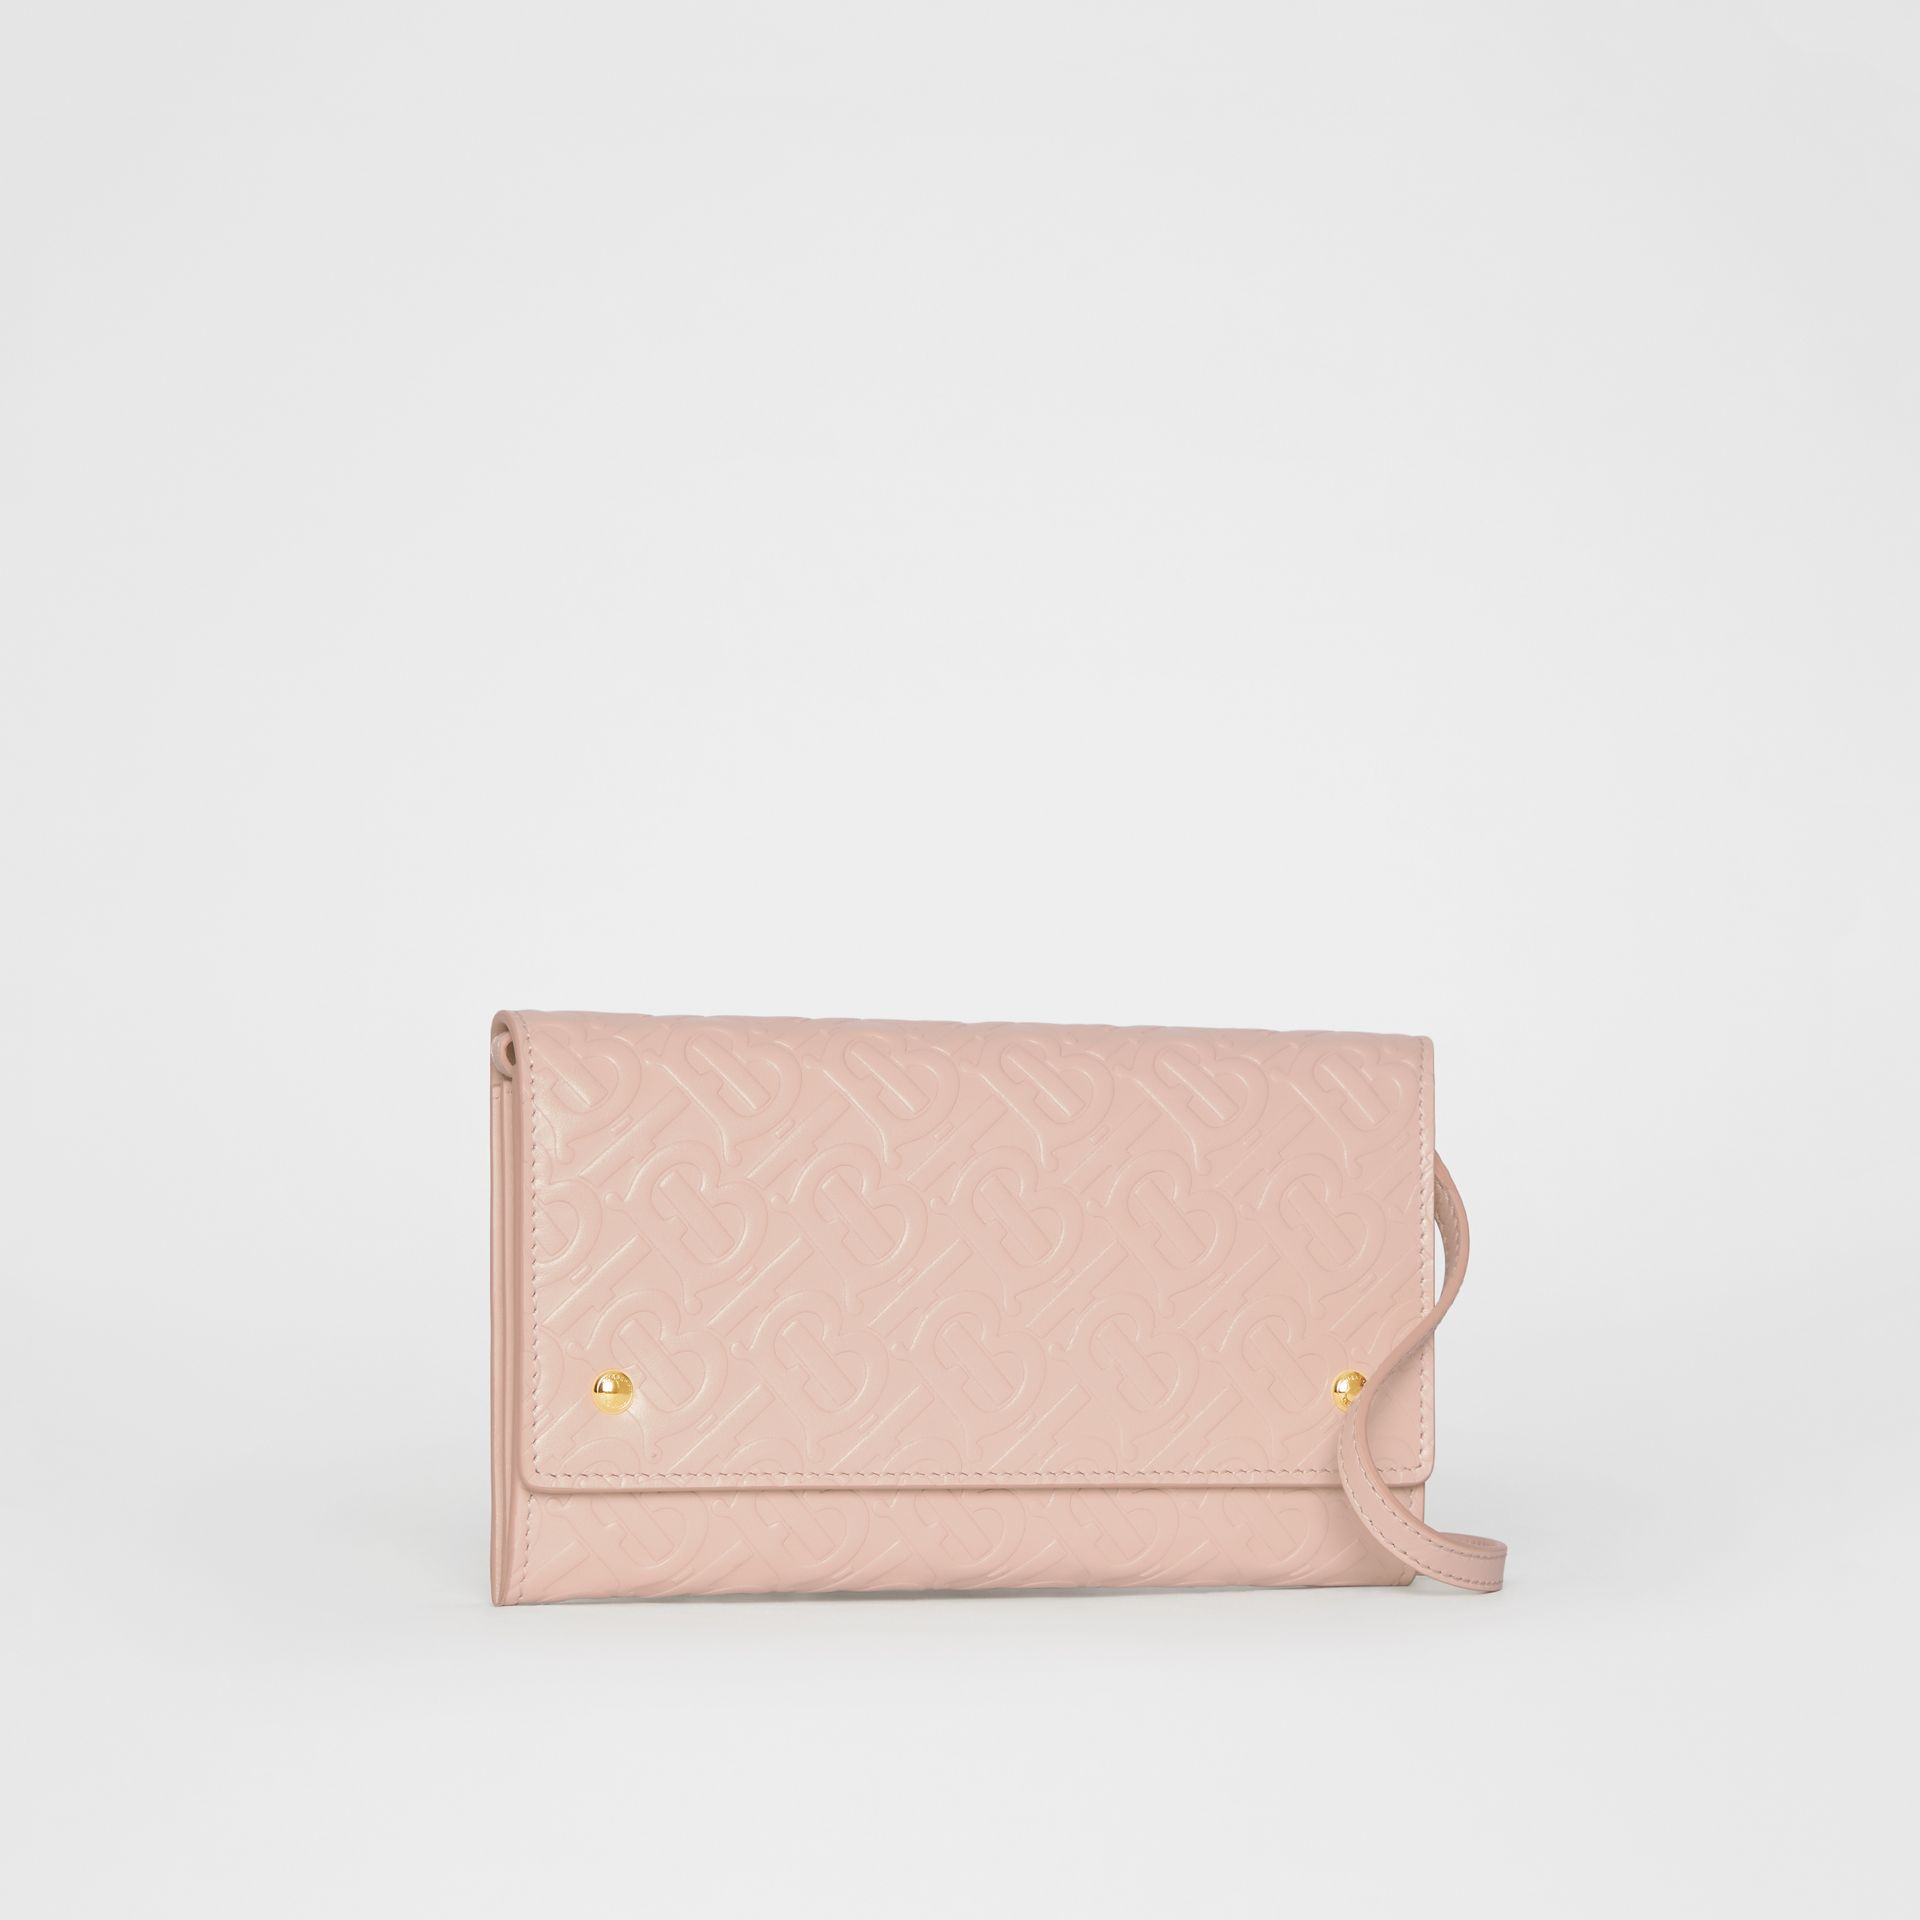 Portefeuille en cuir Monogram et sangle amovible (Beige Rose) - Femme | Burberry - photo de la galerie 5